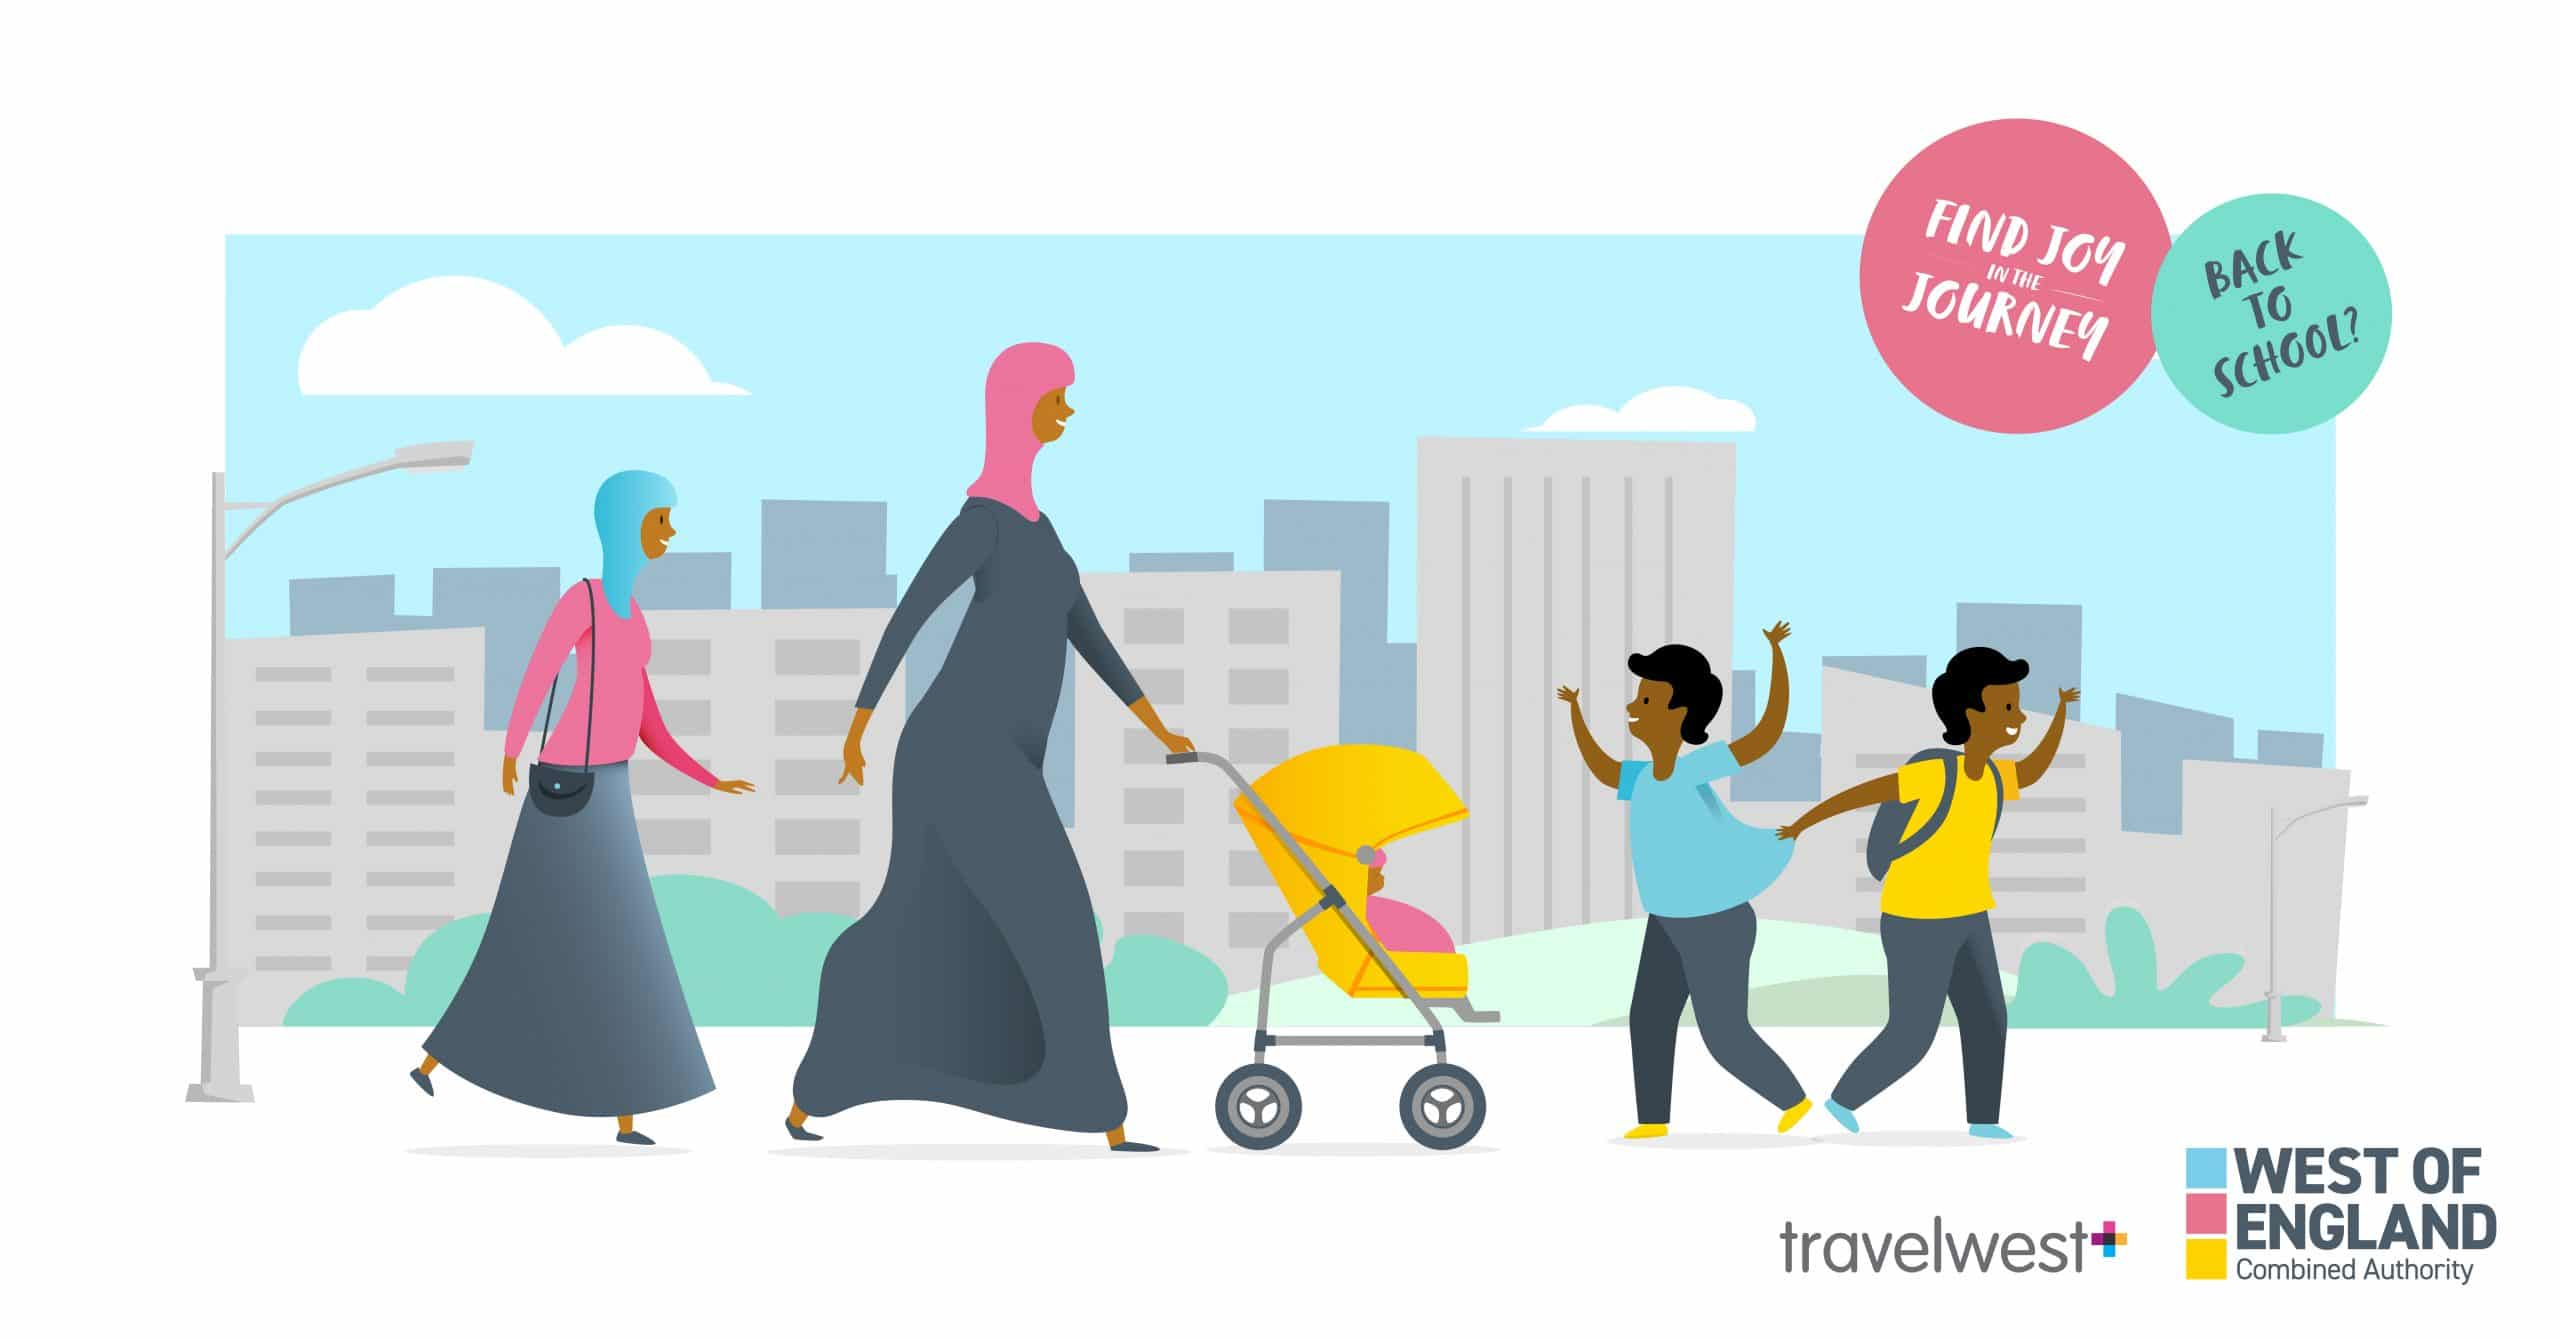 Back to School? Find joy in the journey. Two women walking with two younger boys. One of the women is pushing a baby chair.